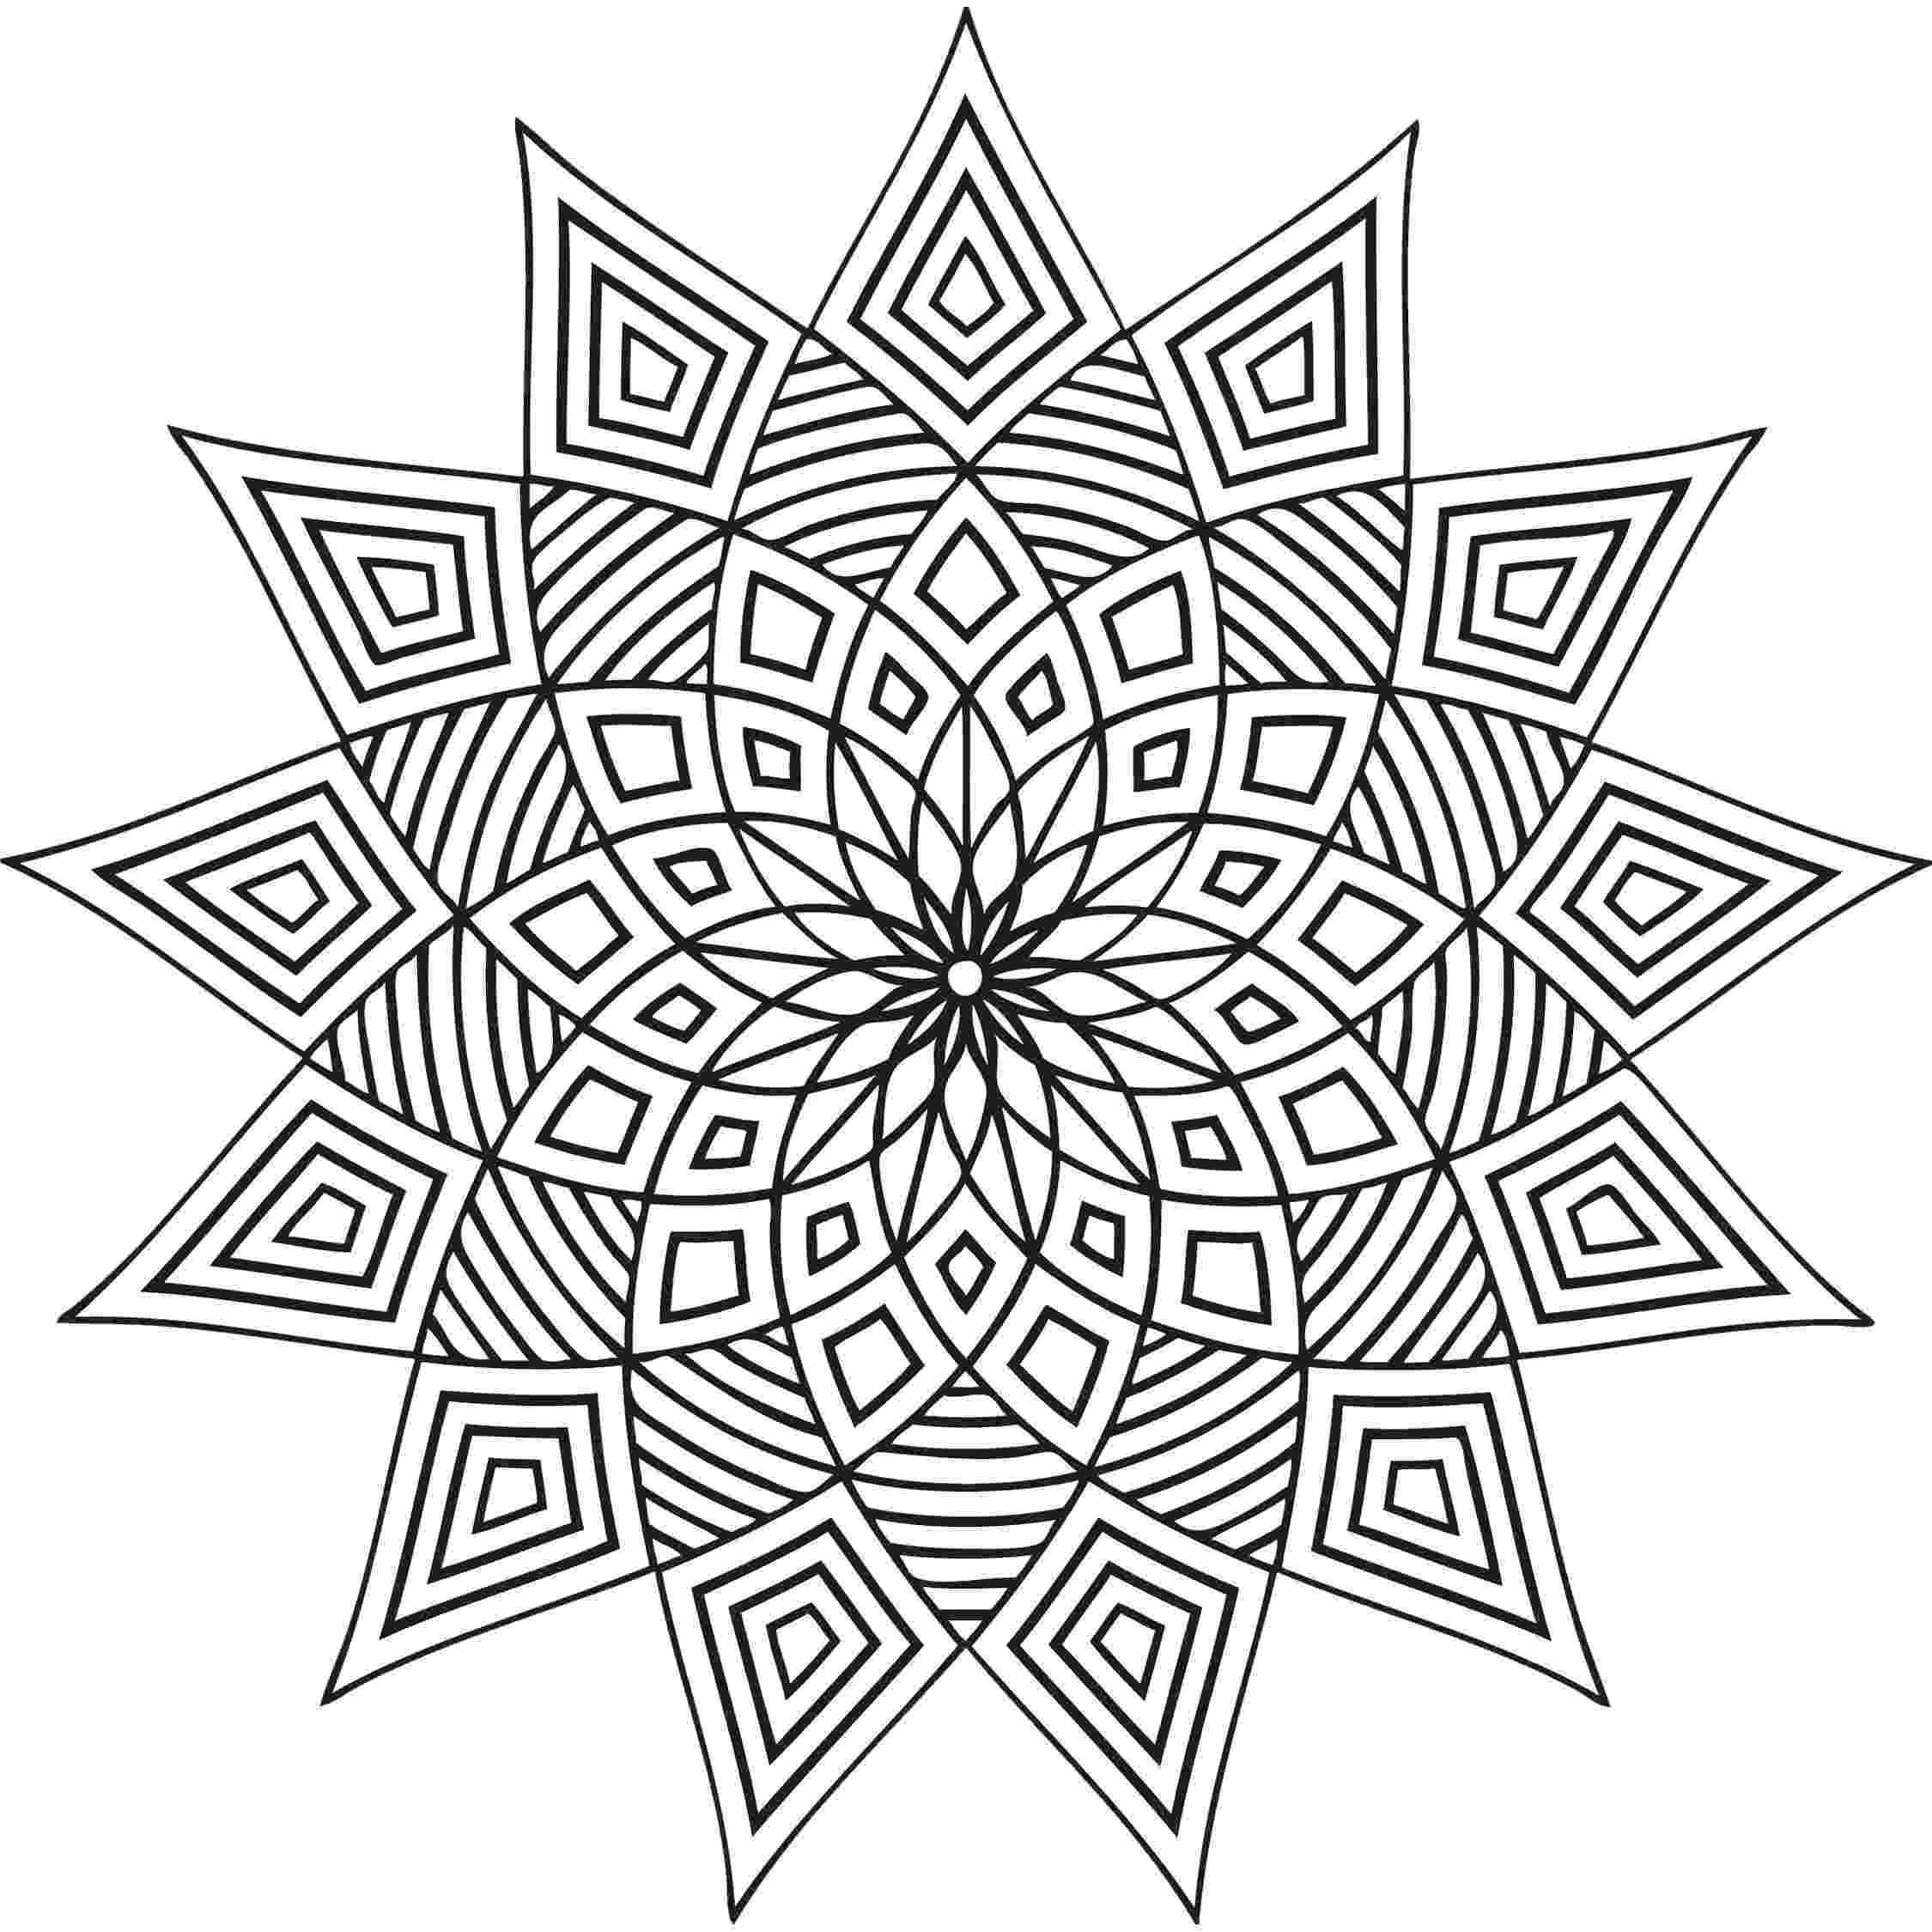 pattern colouring pages free coloring page coloring adult triangles traits anti colouring pages pattern